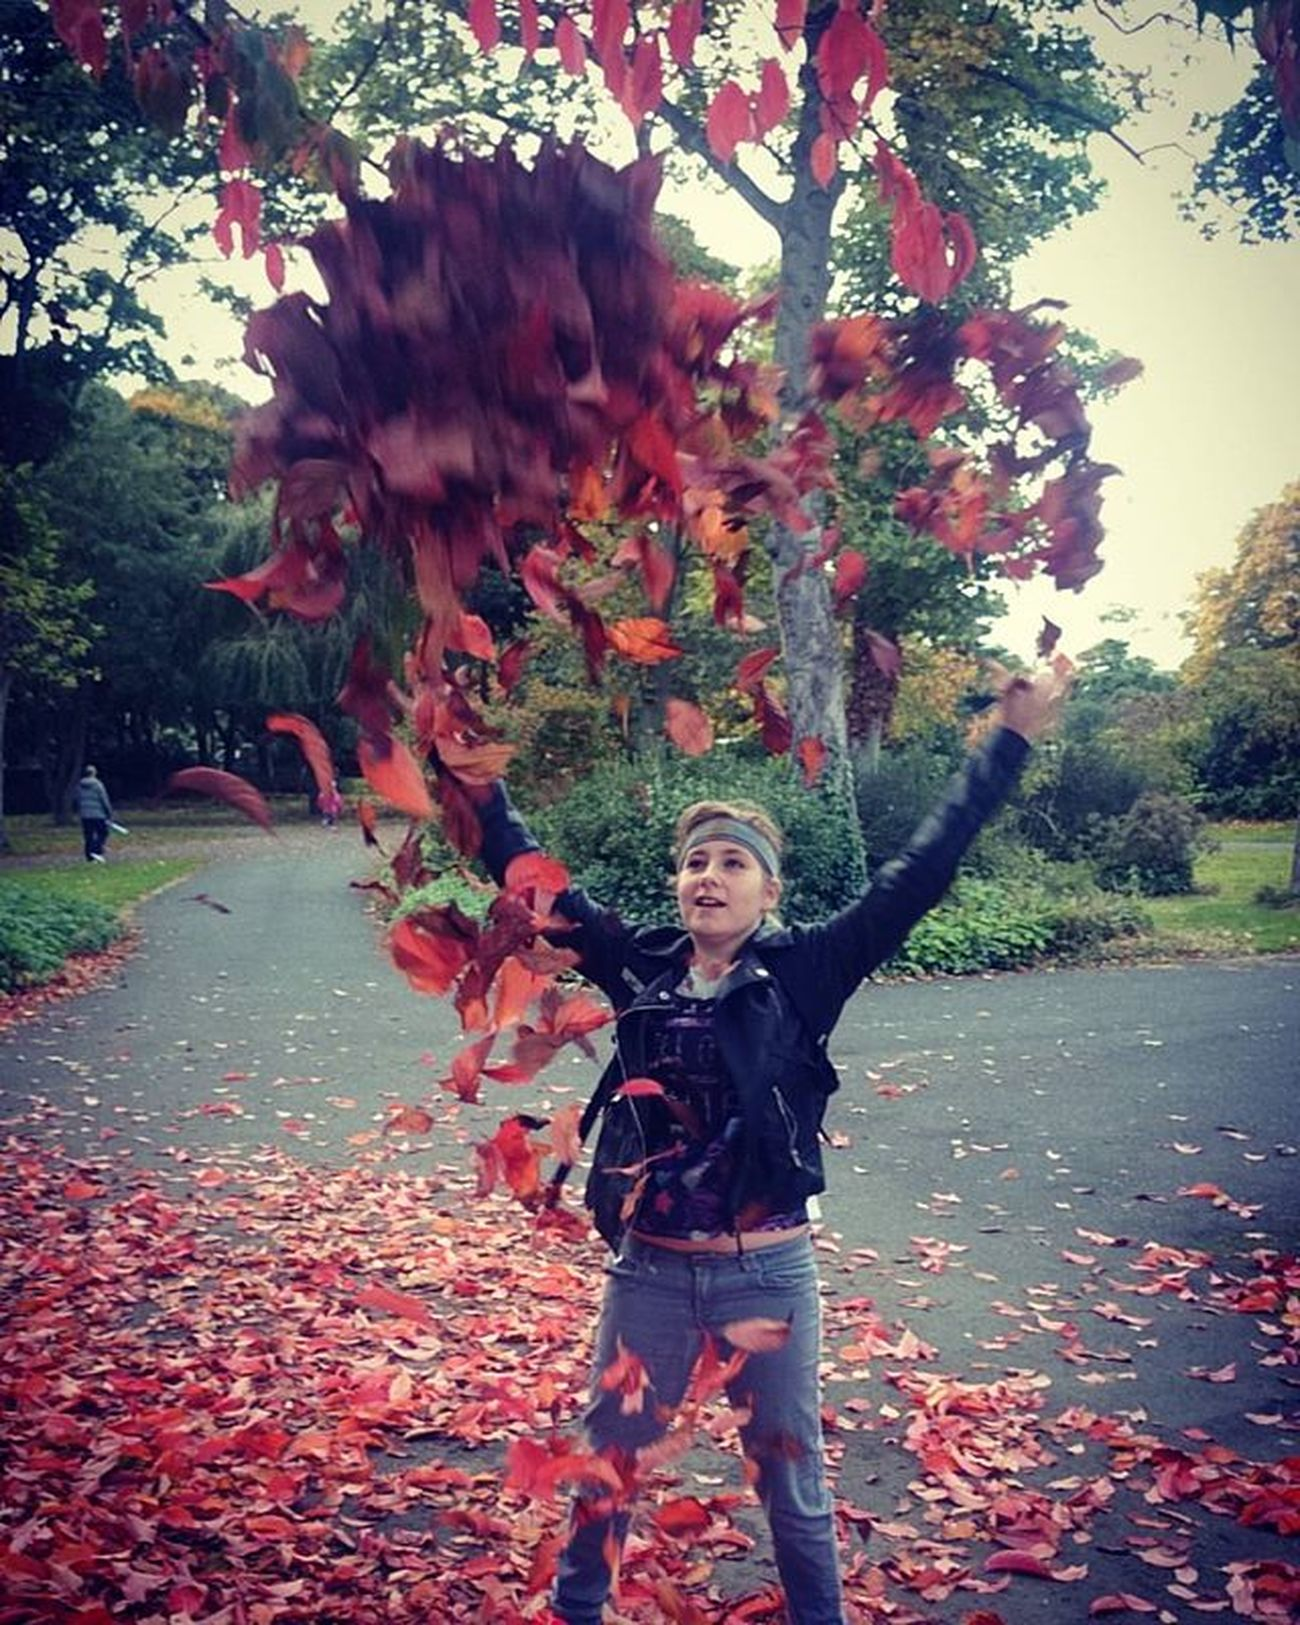 My youngest Tia, throwing leaves into the shape of a heart! The force is strong with this one! 😁 Autumnalleaves Fallleaves Autumcolors Autuminuk Dadliferules Dadlife Mydaughterrocks